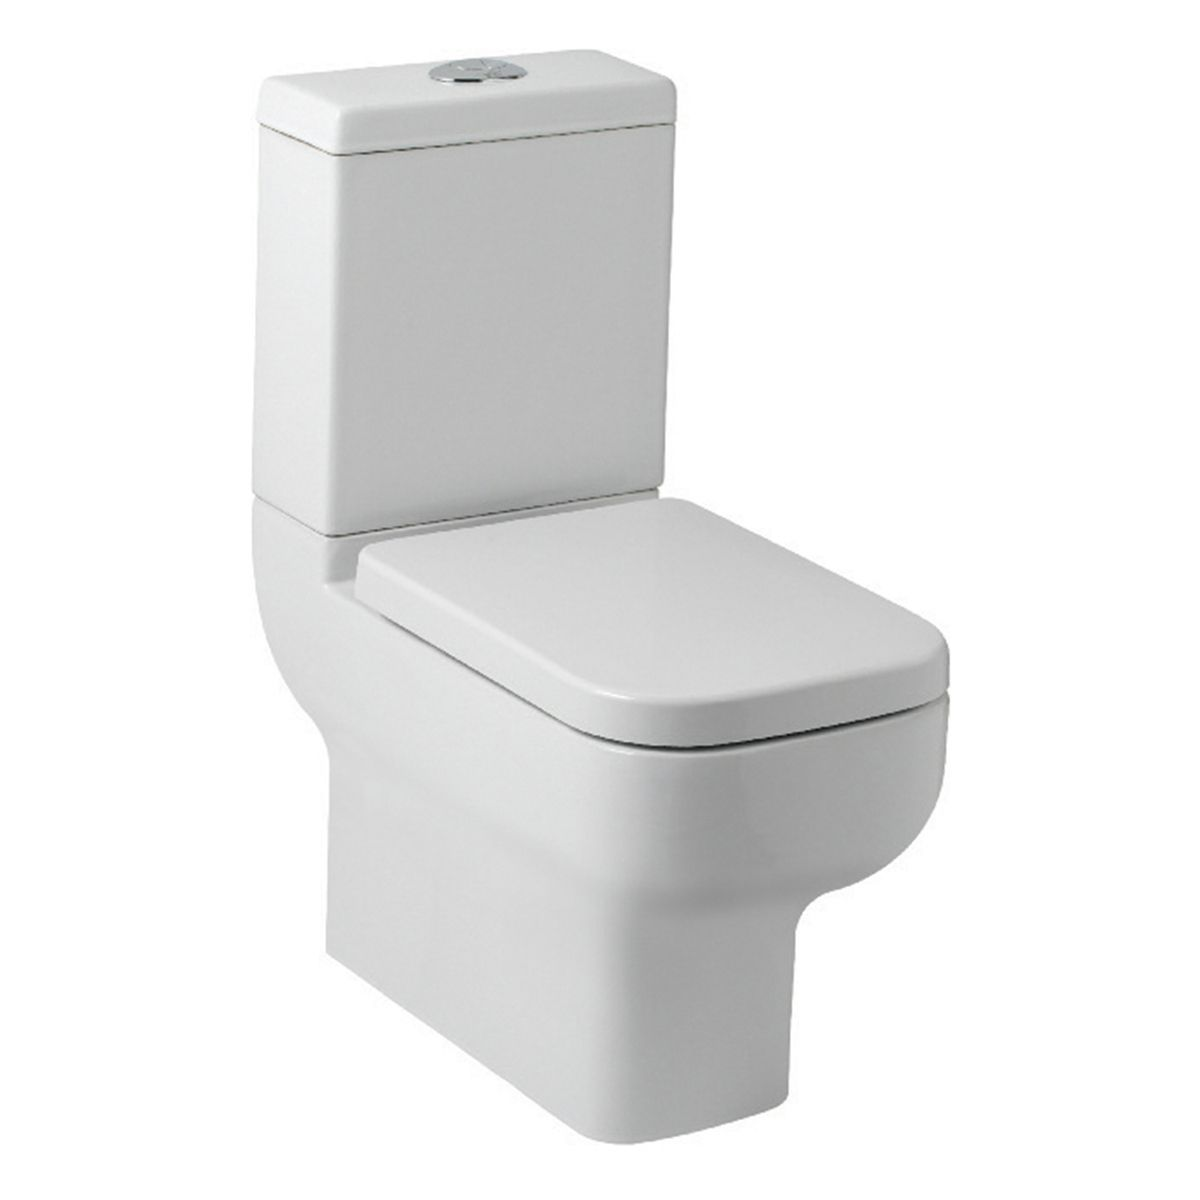 Kartell K-VIT Options 600 Comfort Height Toilet with Soft Close Seat